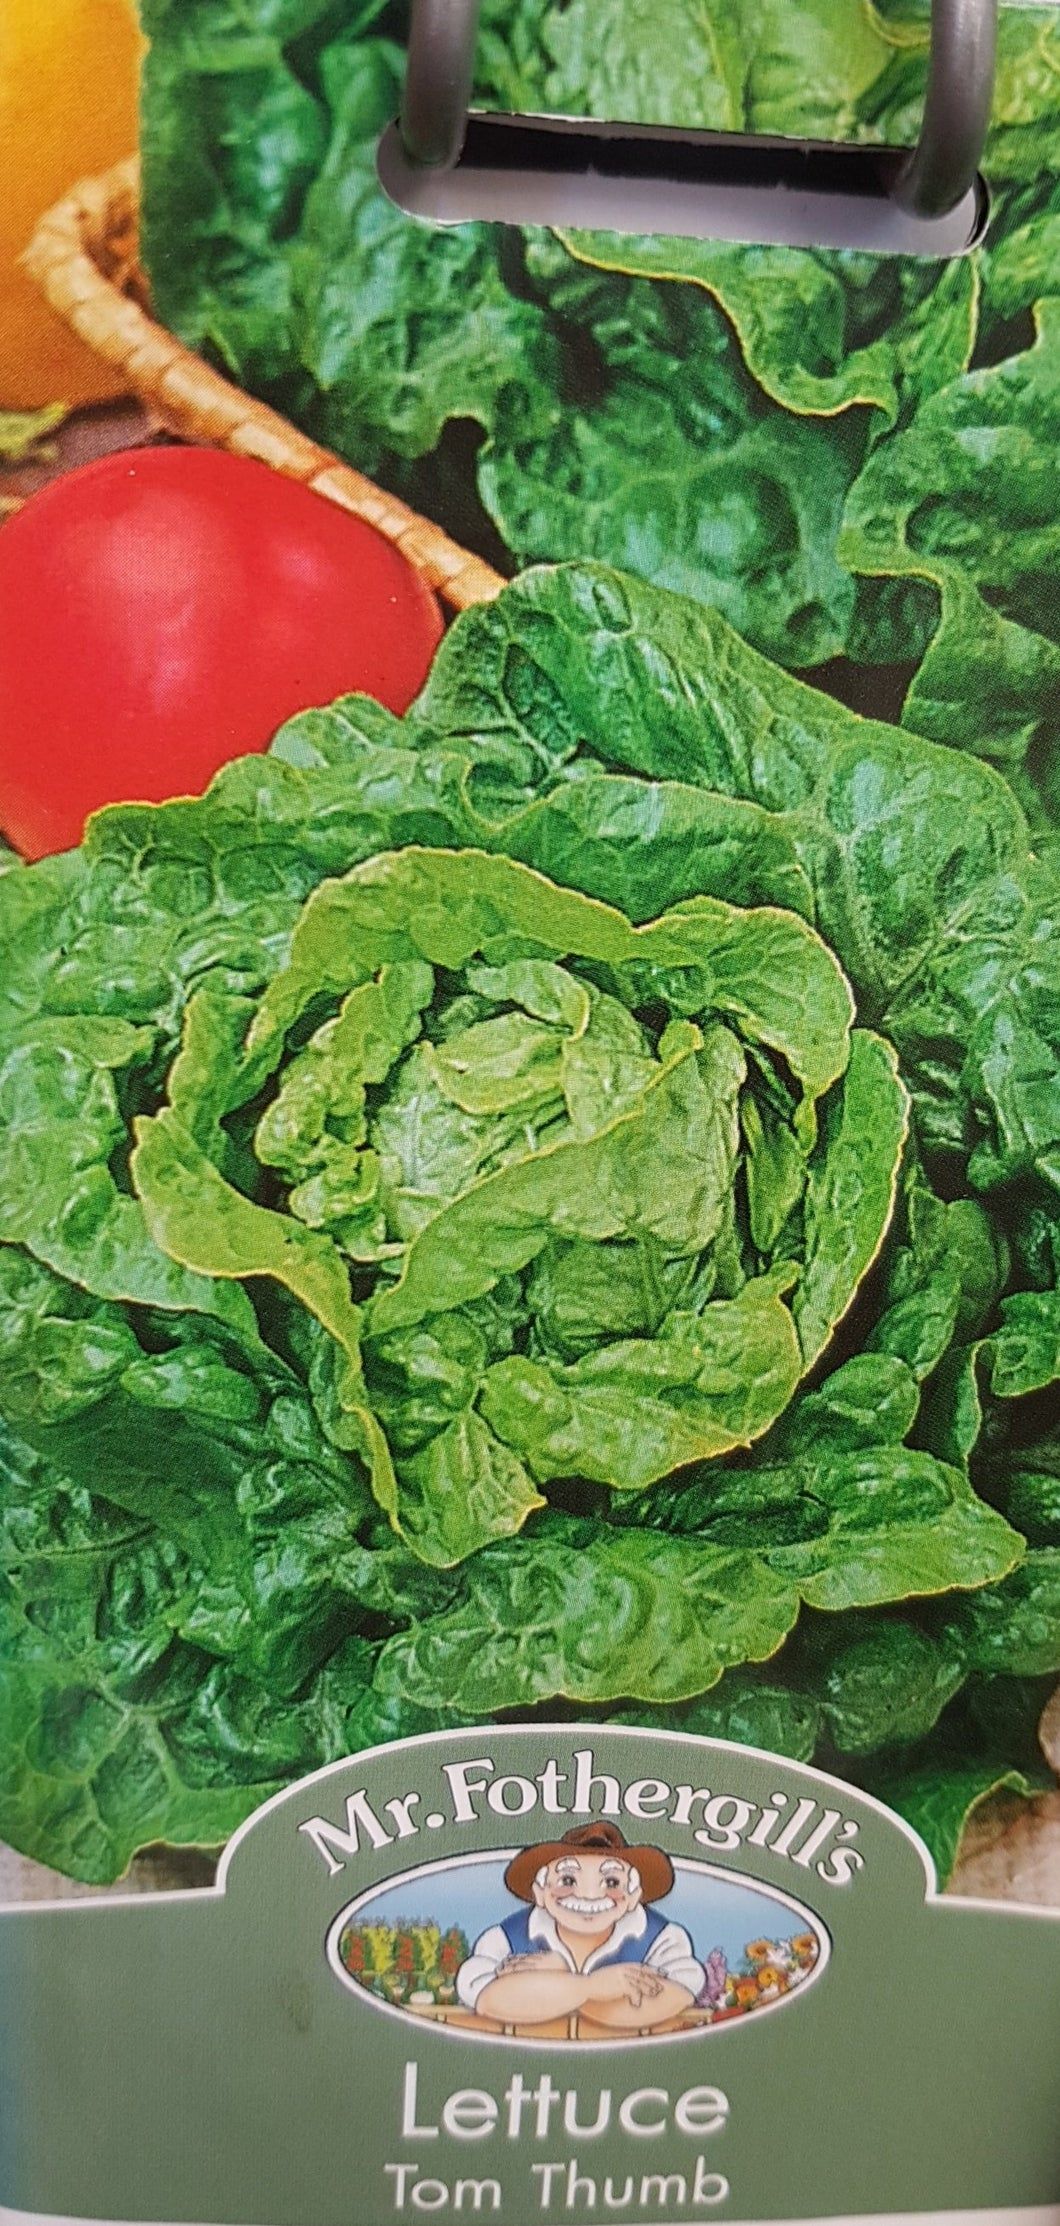 Lettuce (Tom Thumb)